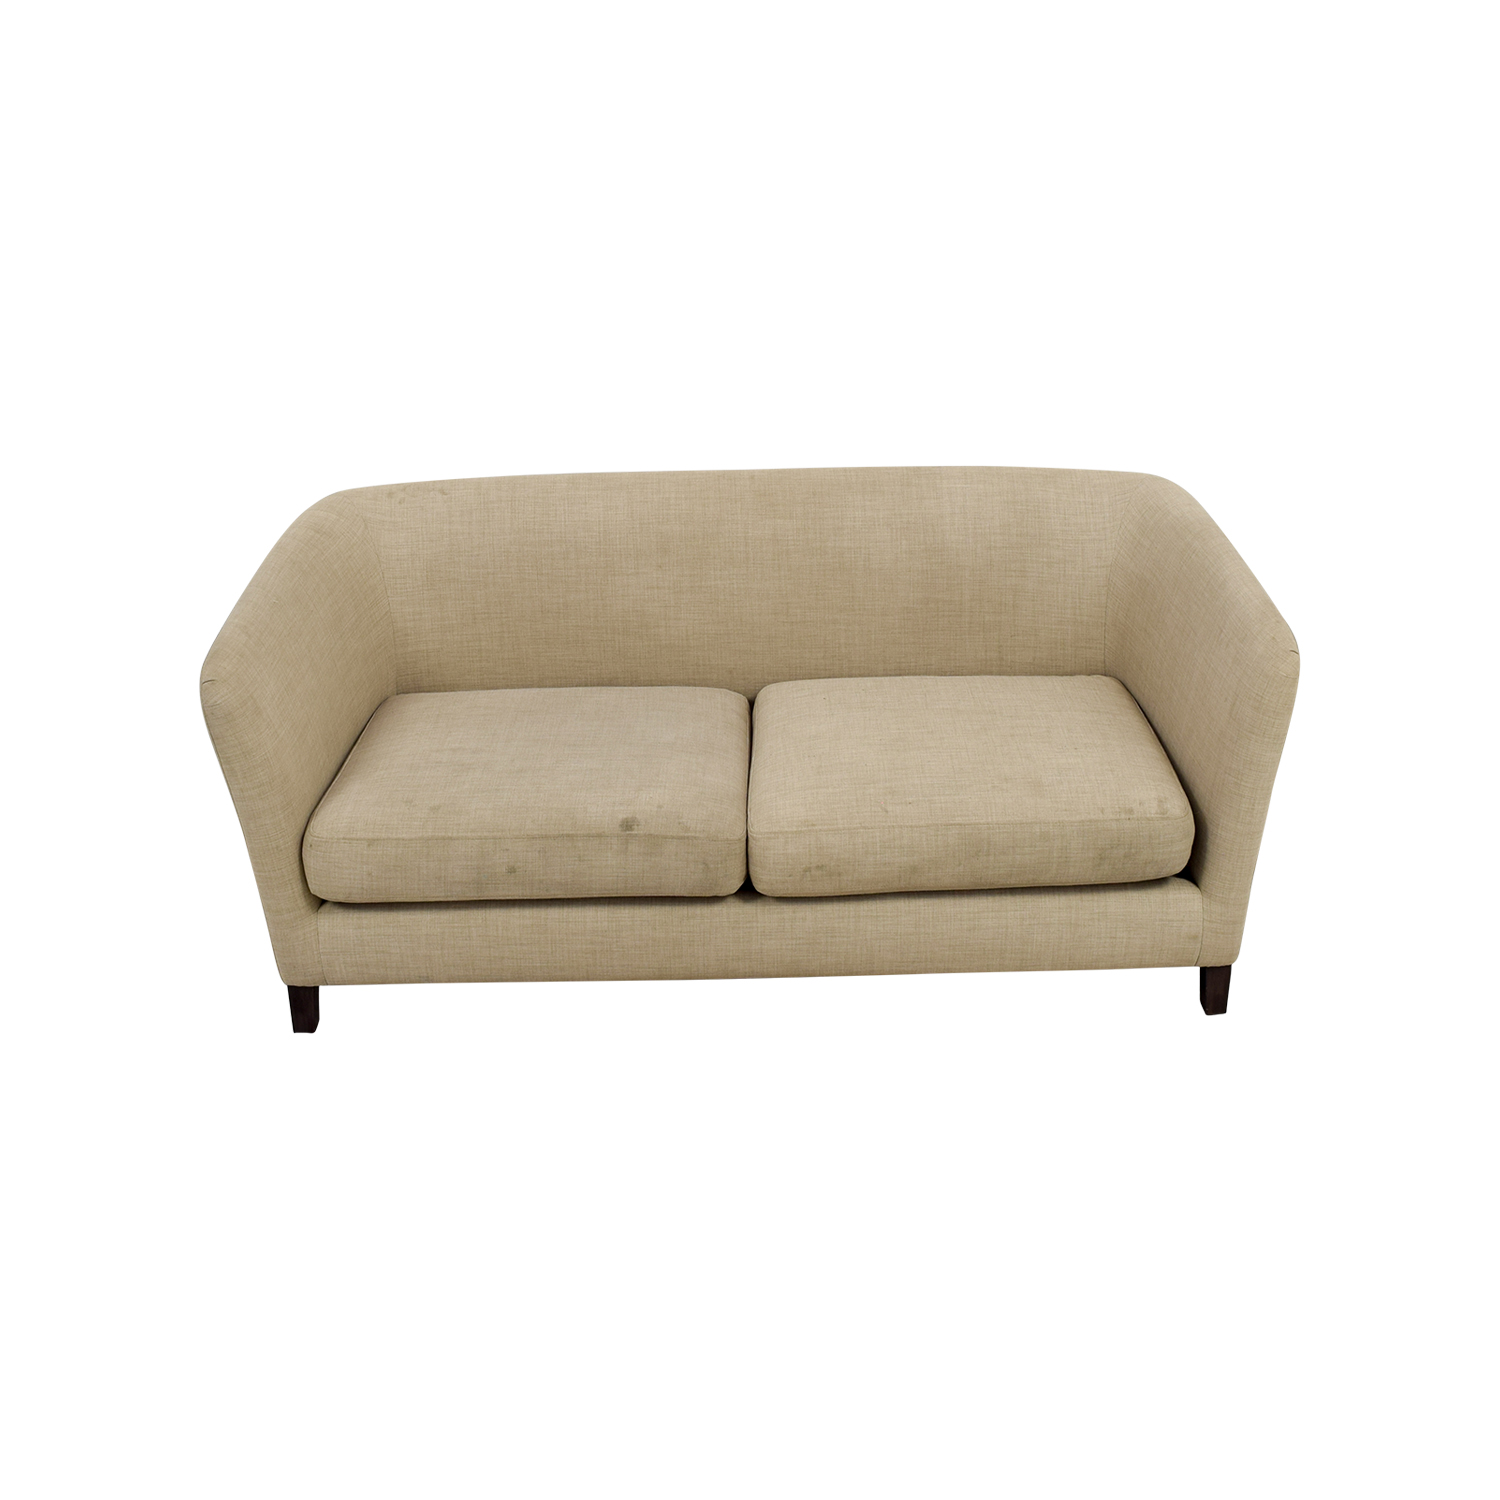 pottery barn sofa for sale by owner leather sofas in dallas area classic used